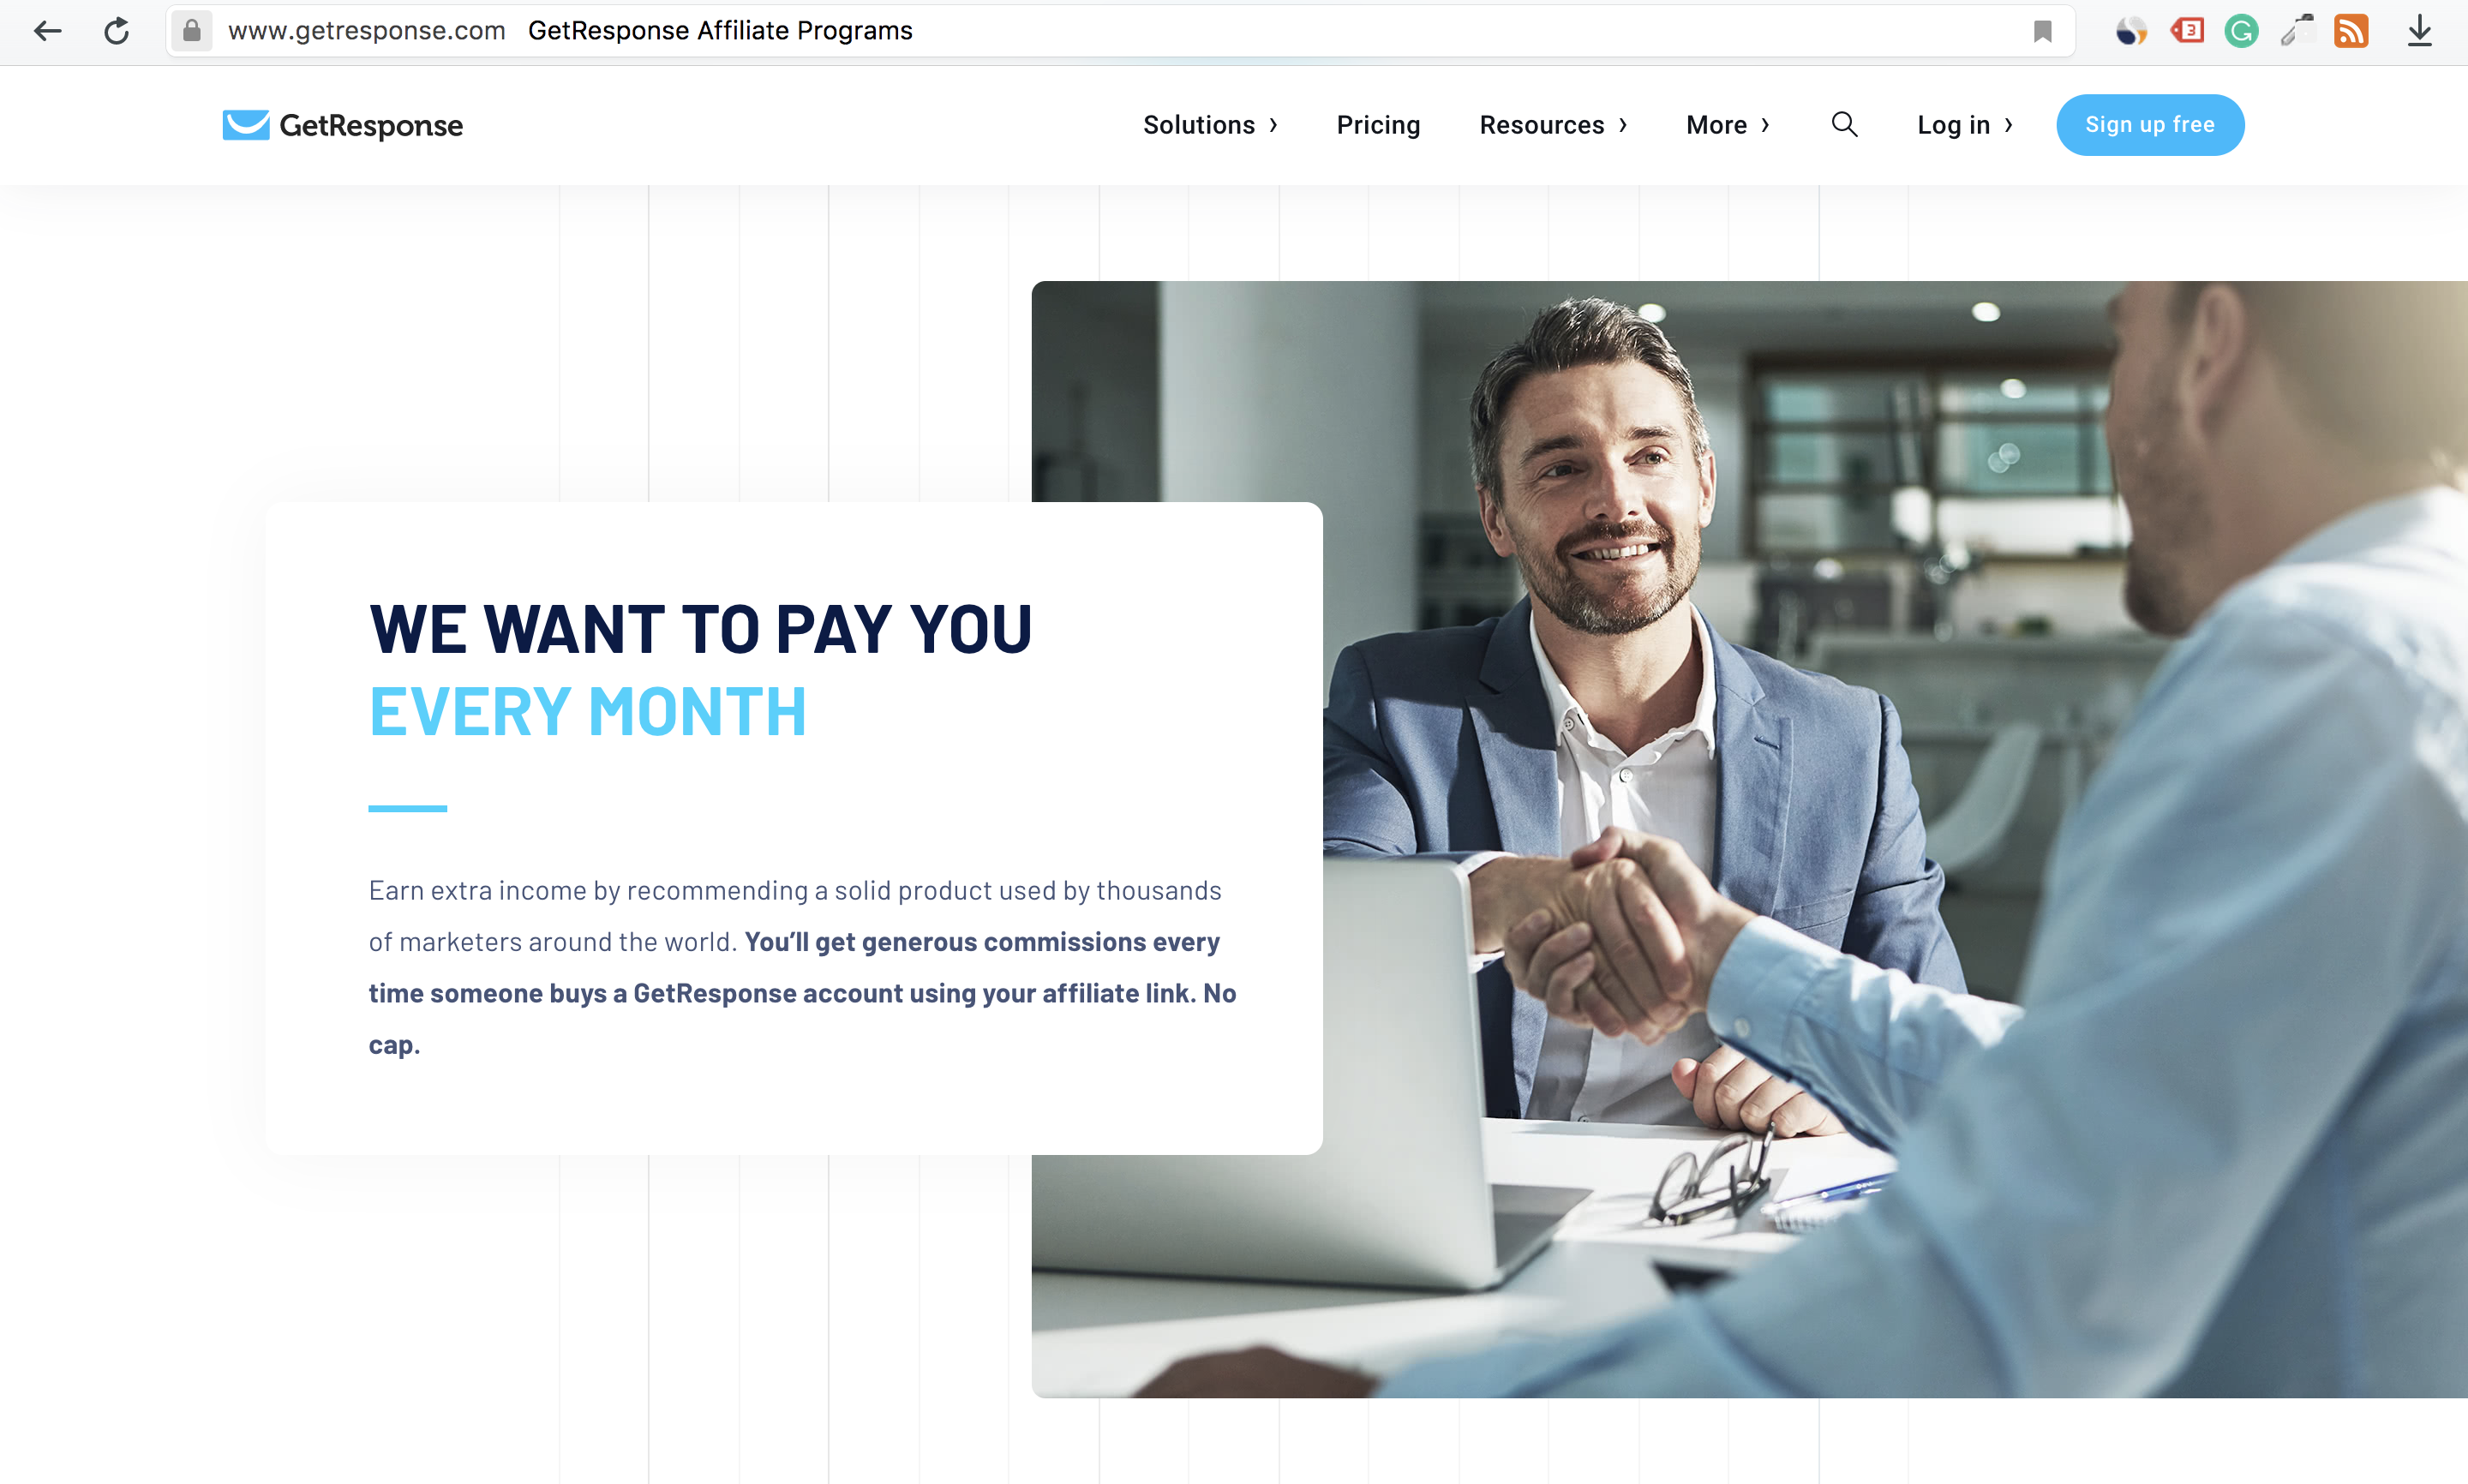 GetResponse Affiliate Program Sneak Peek